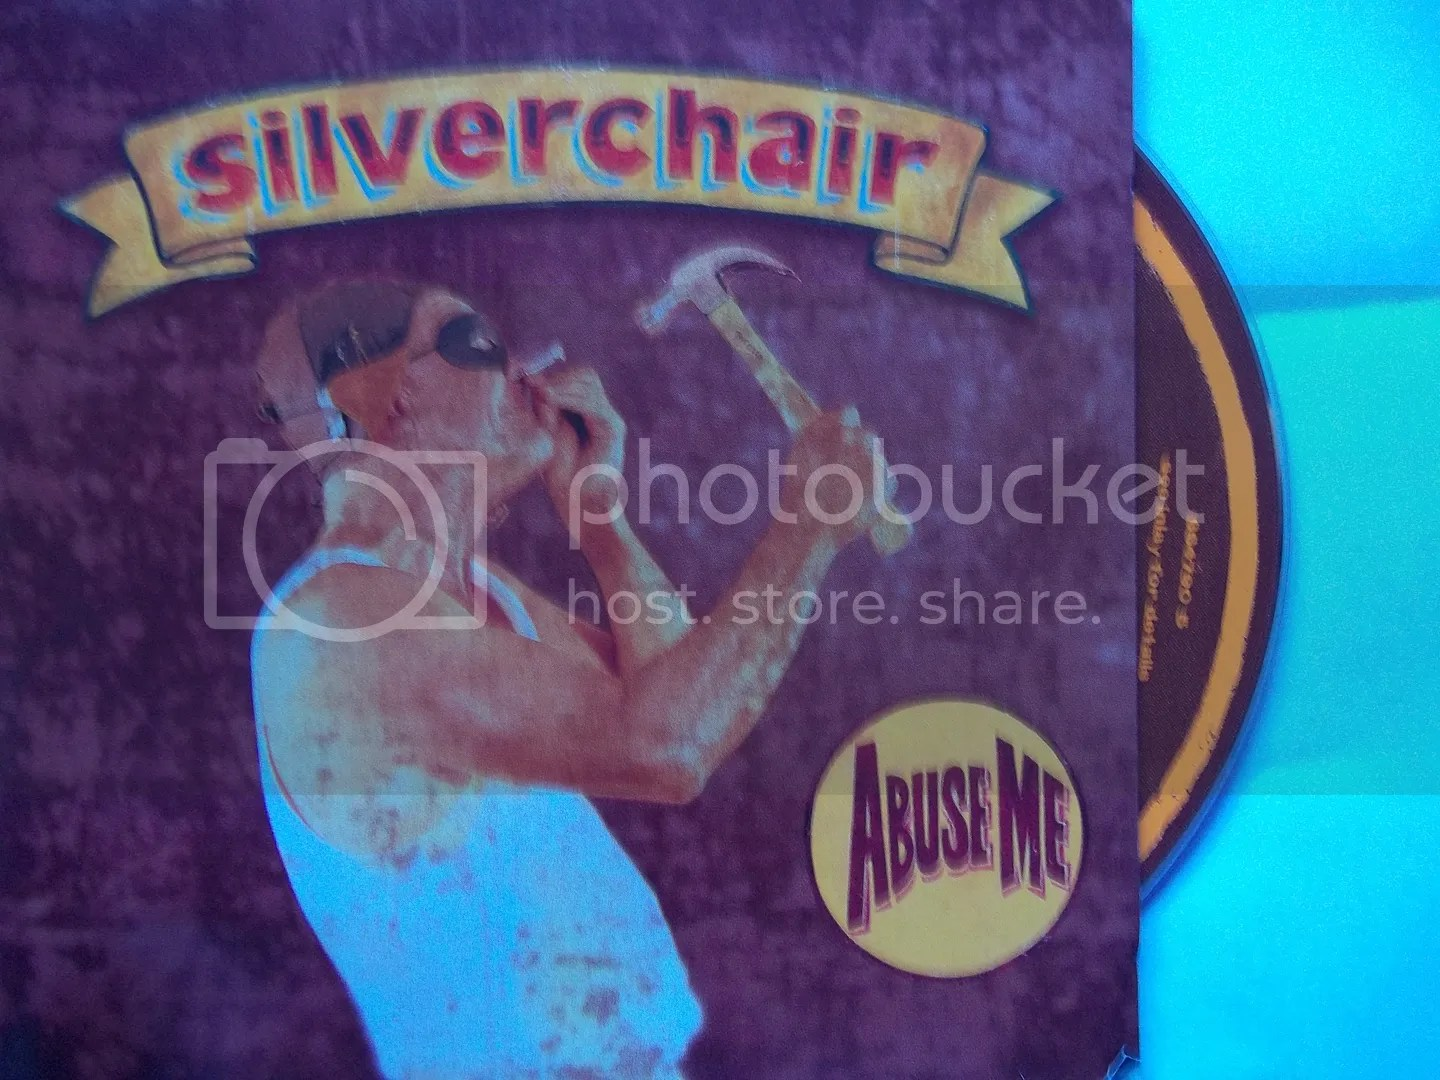 Silver Chair Silverchair Abuse Me Records Lps Vinyl And Cds Musicstack